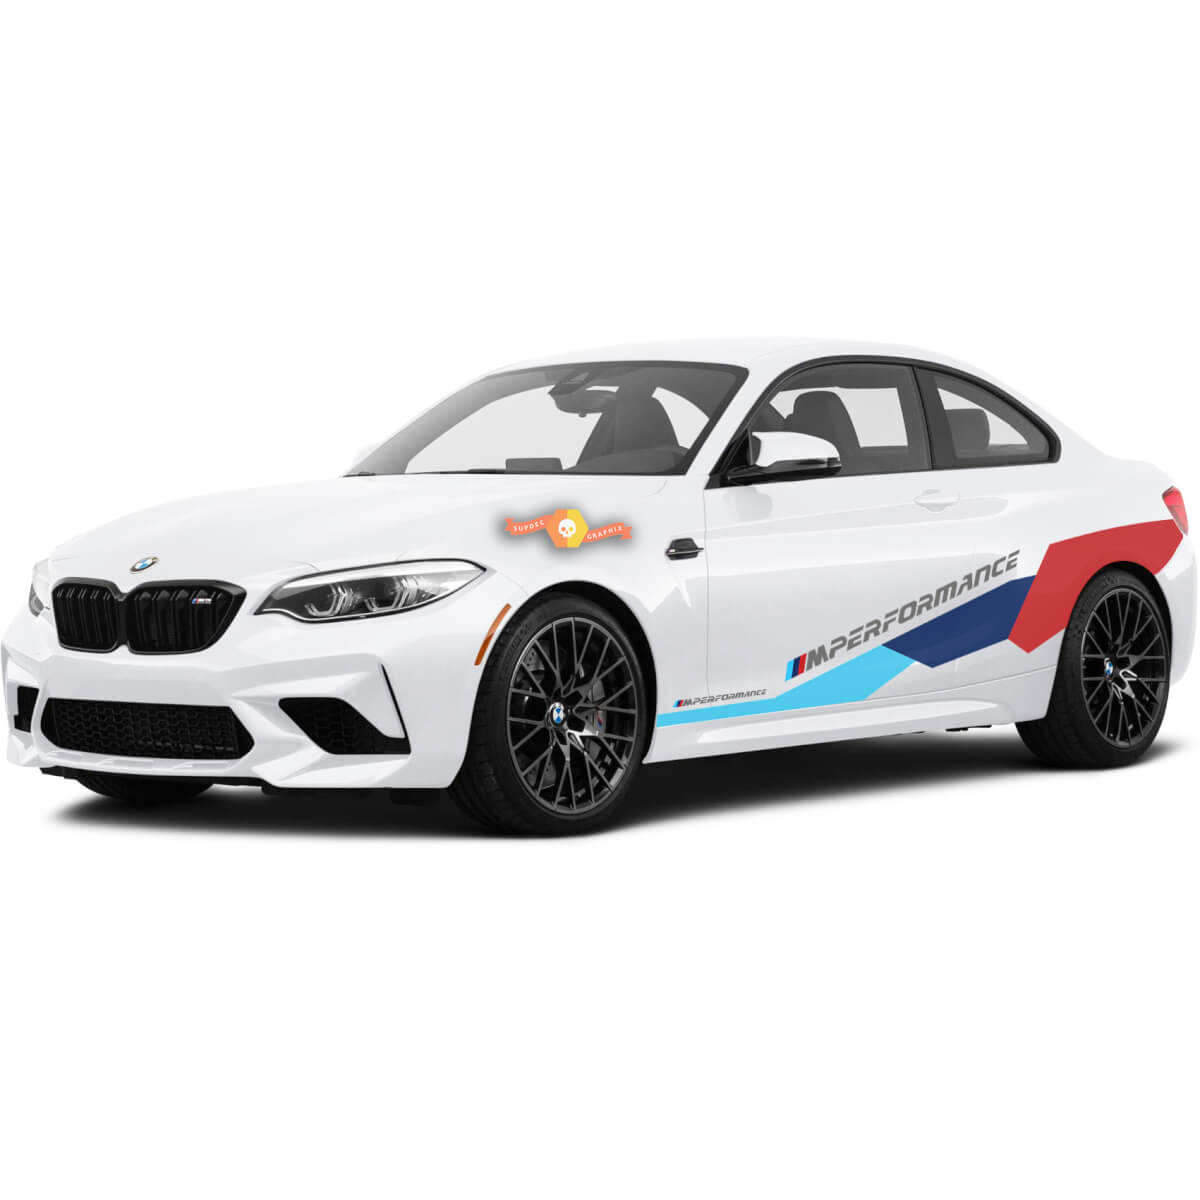 BMW M Power M Performance Huge Side New vinyl decals stickers For M4 M2 M5 M3